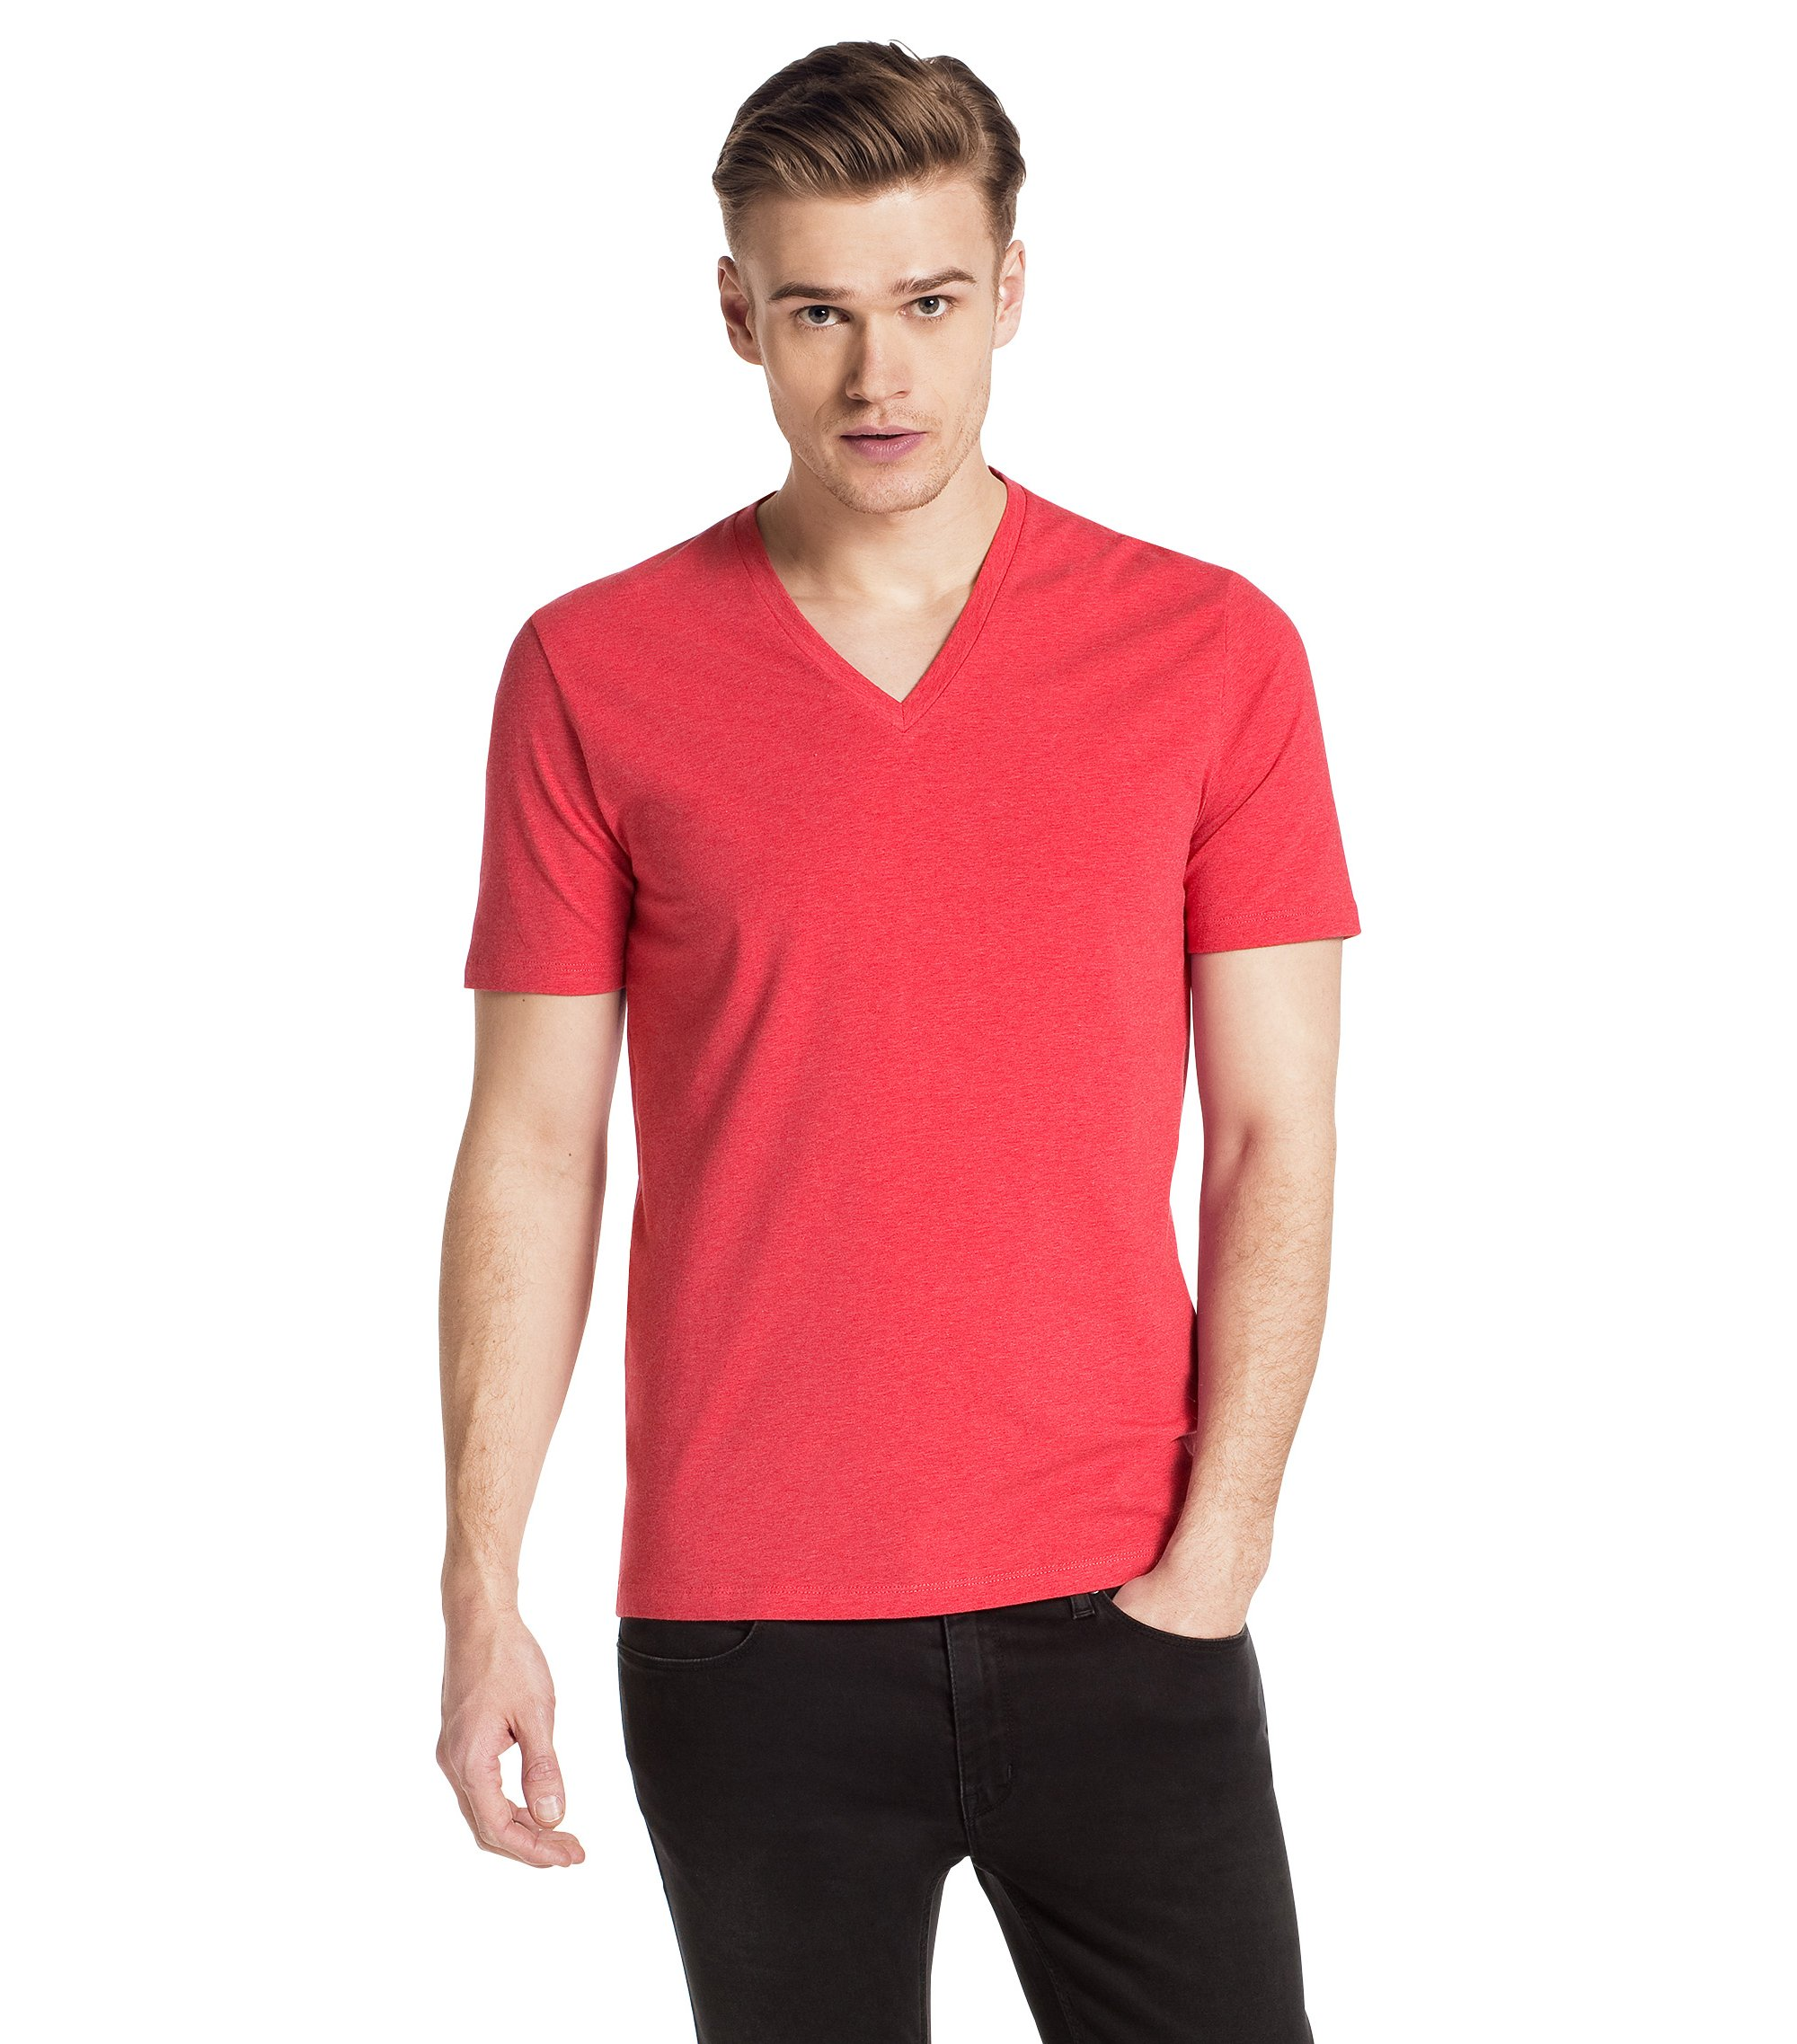 V-neck T-shirt 'Dredoso', Red